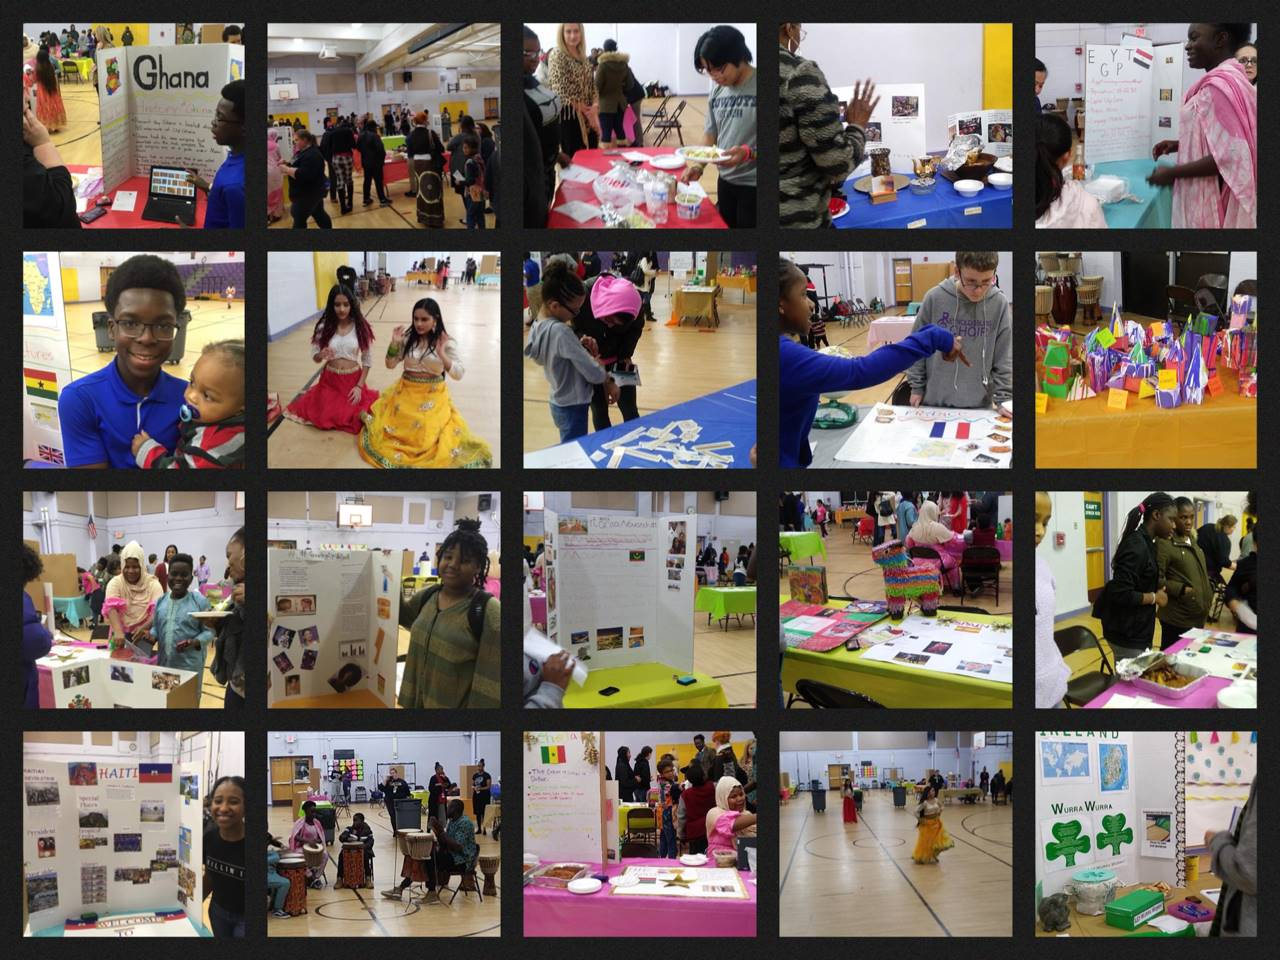 This is a collage of families and students set up in the HAMS gym at booths for various cultures.